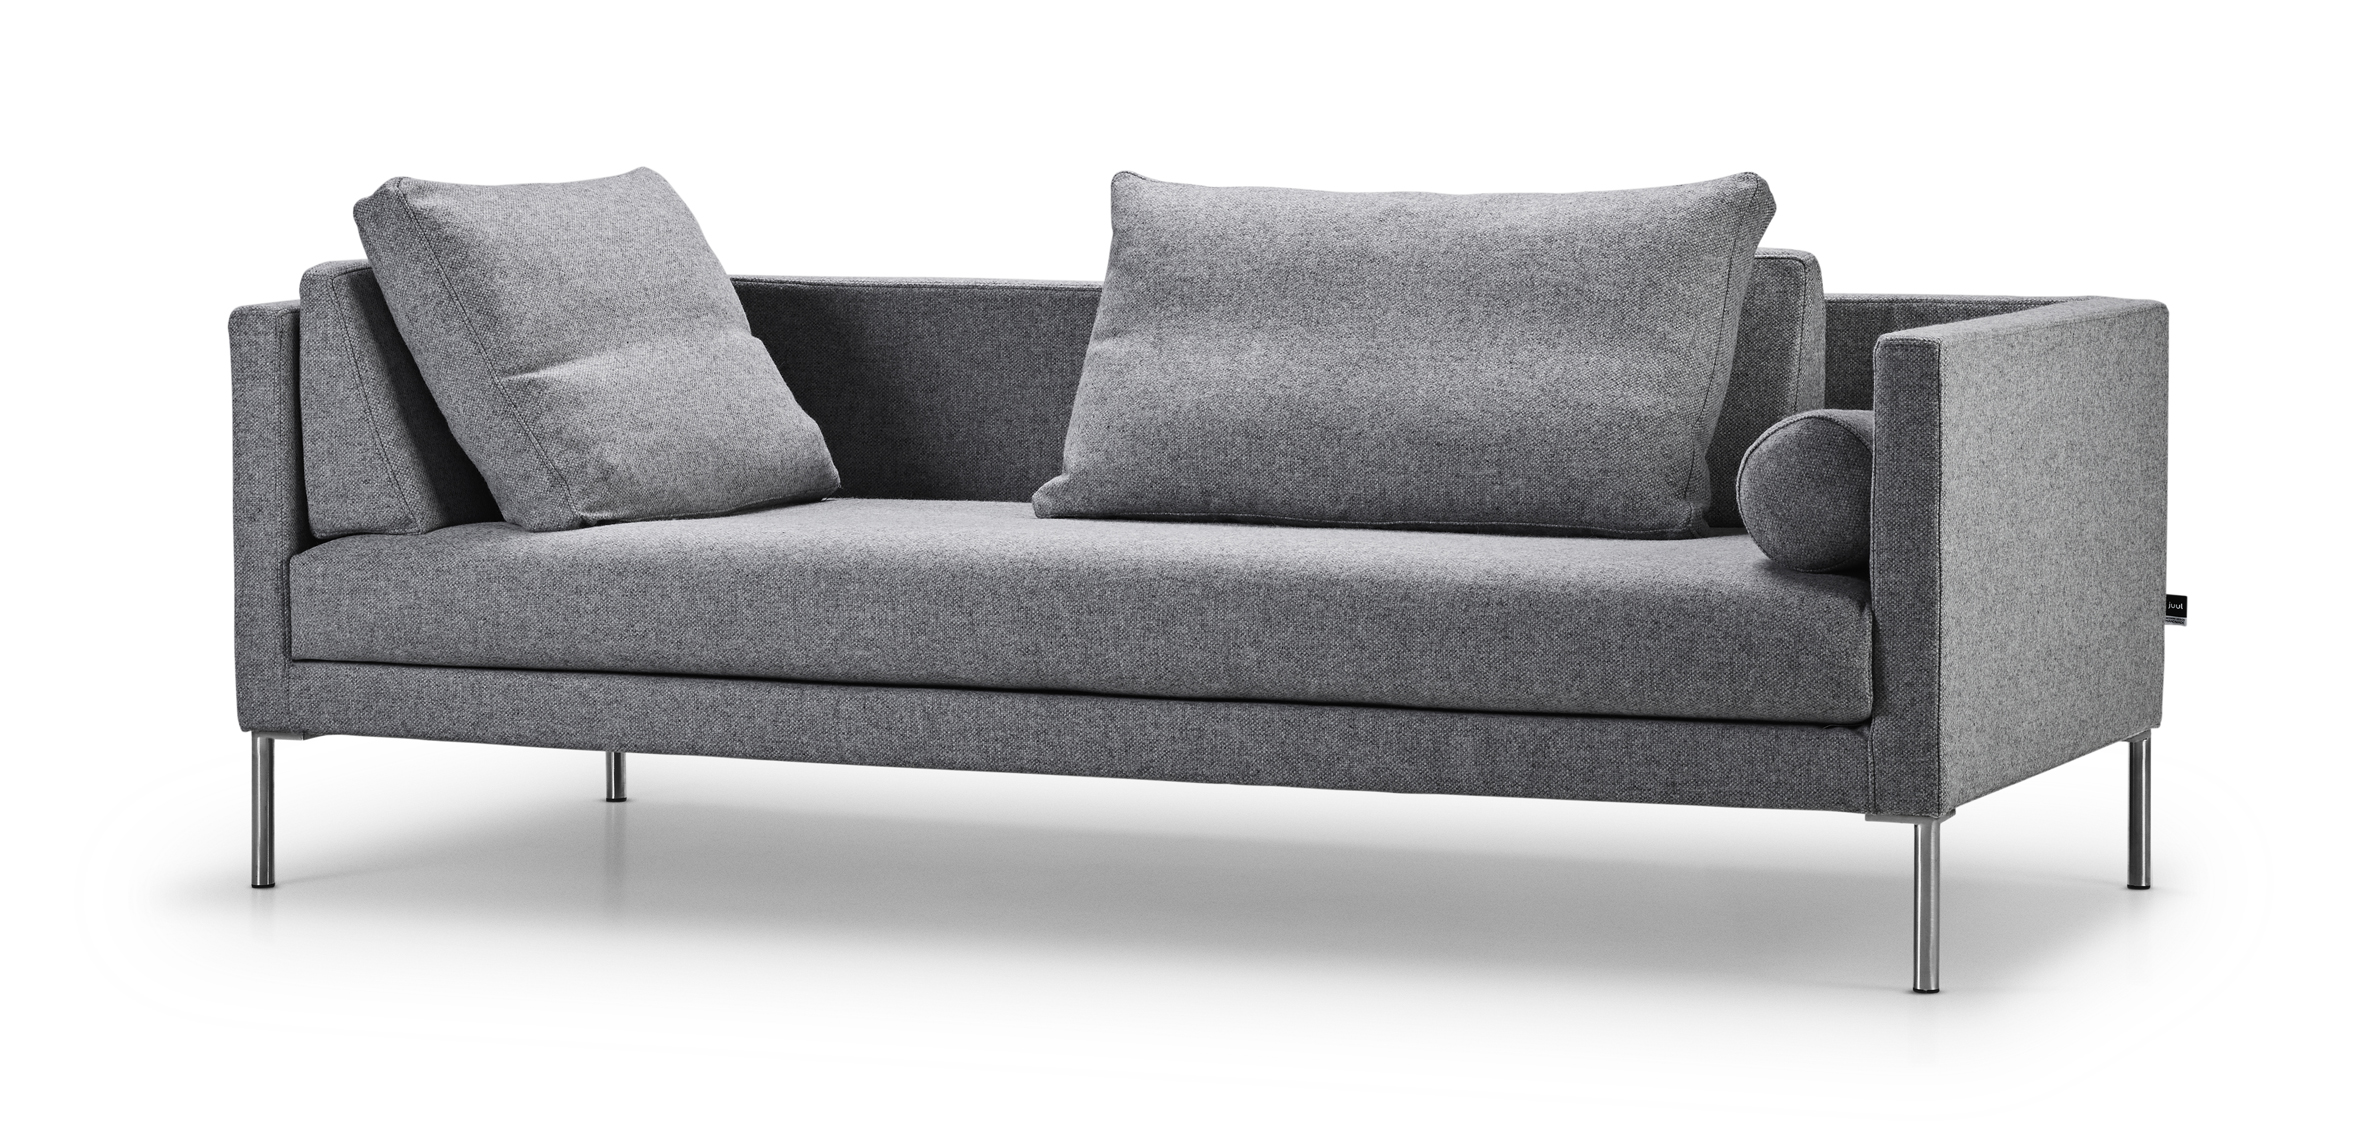 eilersen sofa baseline m chaiselong beige color cover juul by kob sofaer hos mobelgarden marslet model 701 design jens